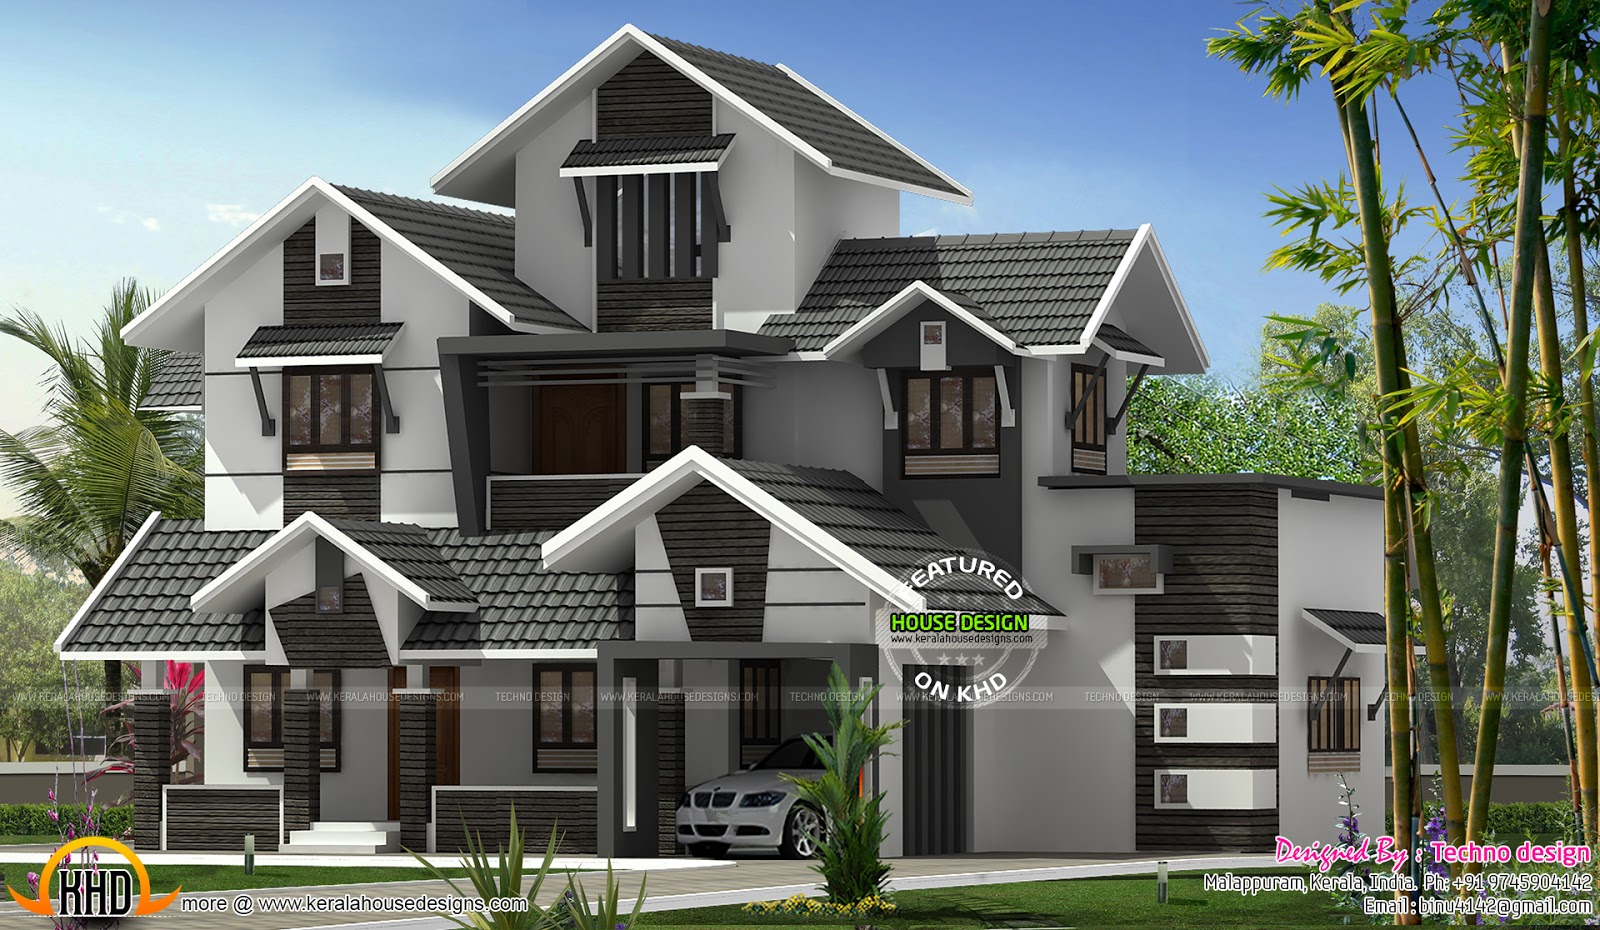 Modern kerala home design kerala home design and floor plans for Kerala home designs com